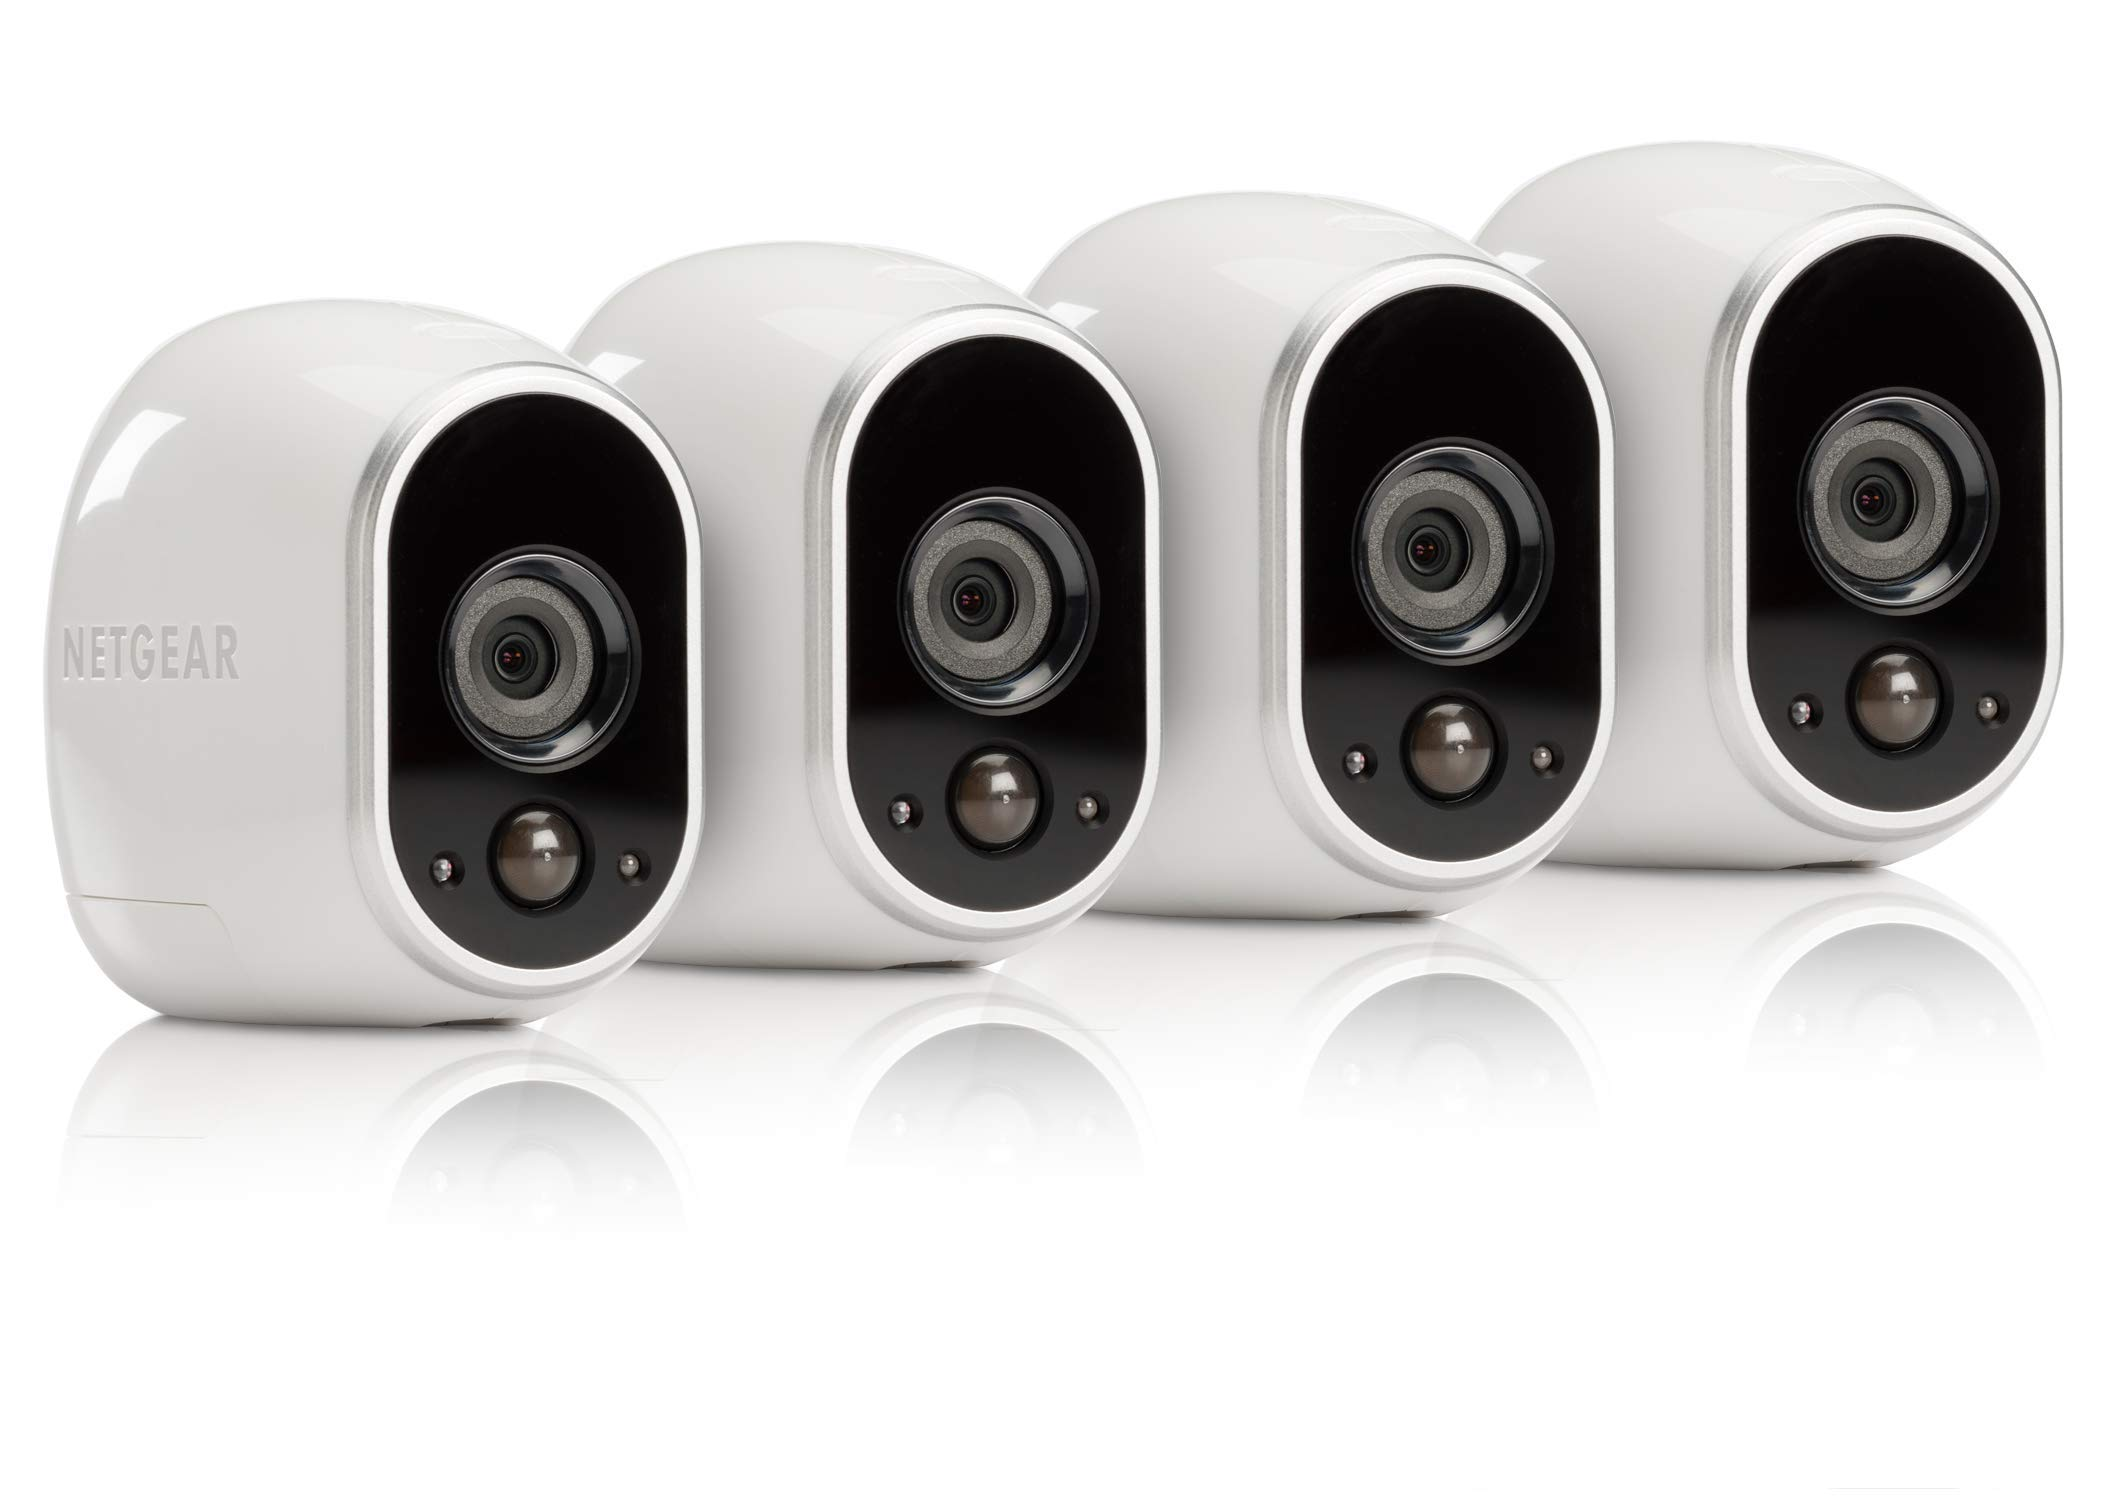 Arlo - Wireless Home Security Camera System with Motion Detection | Night vision, Indoor/Outdoor, HD Video, Wall Mount | Cloud Storage Included | 4 camera kit (VMS3430) by Arlo Technologies, Inc